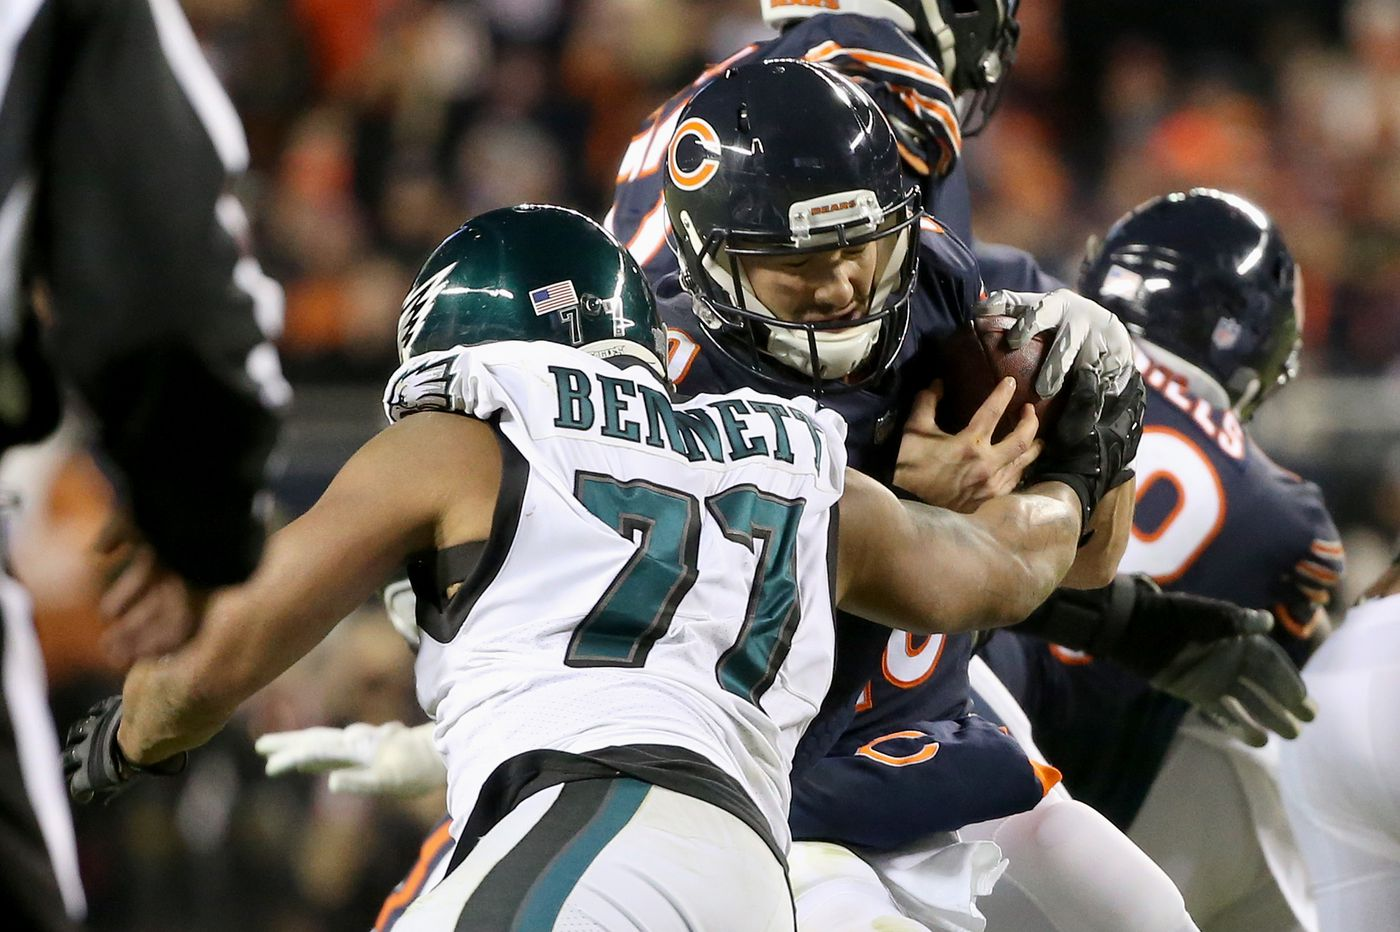 Grading the Eagles: Run defense earns 'A-minus' in playoff win over Bears